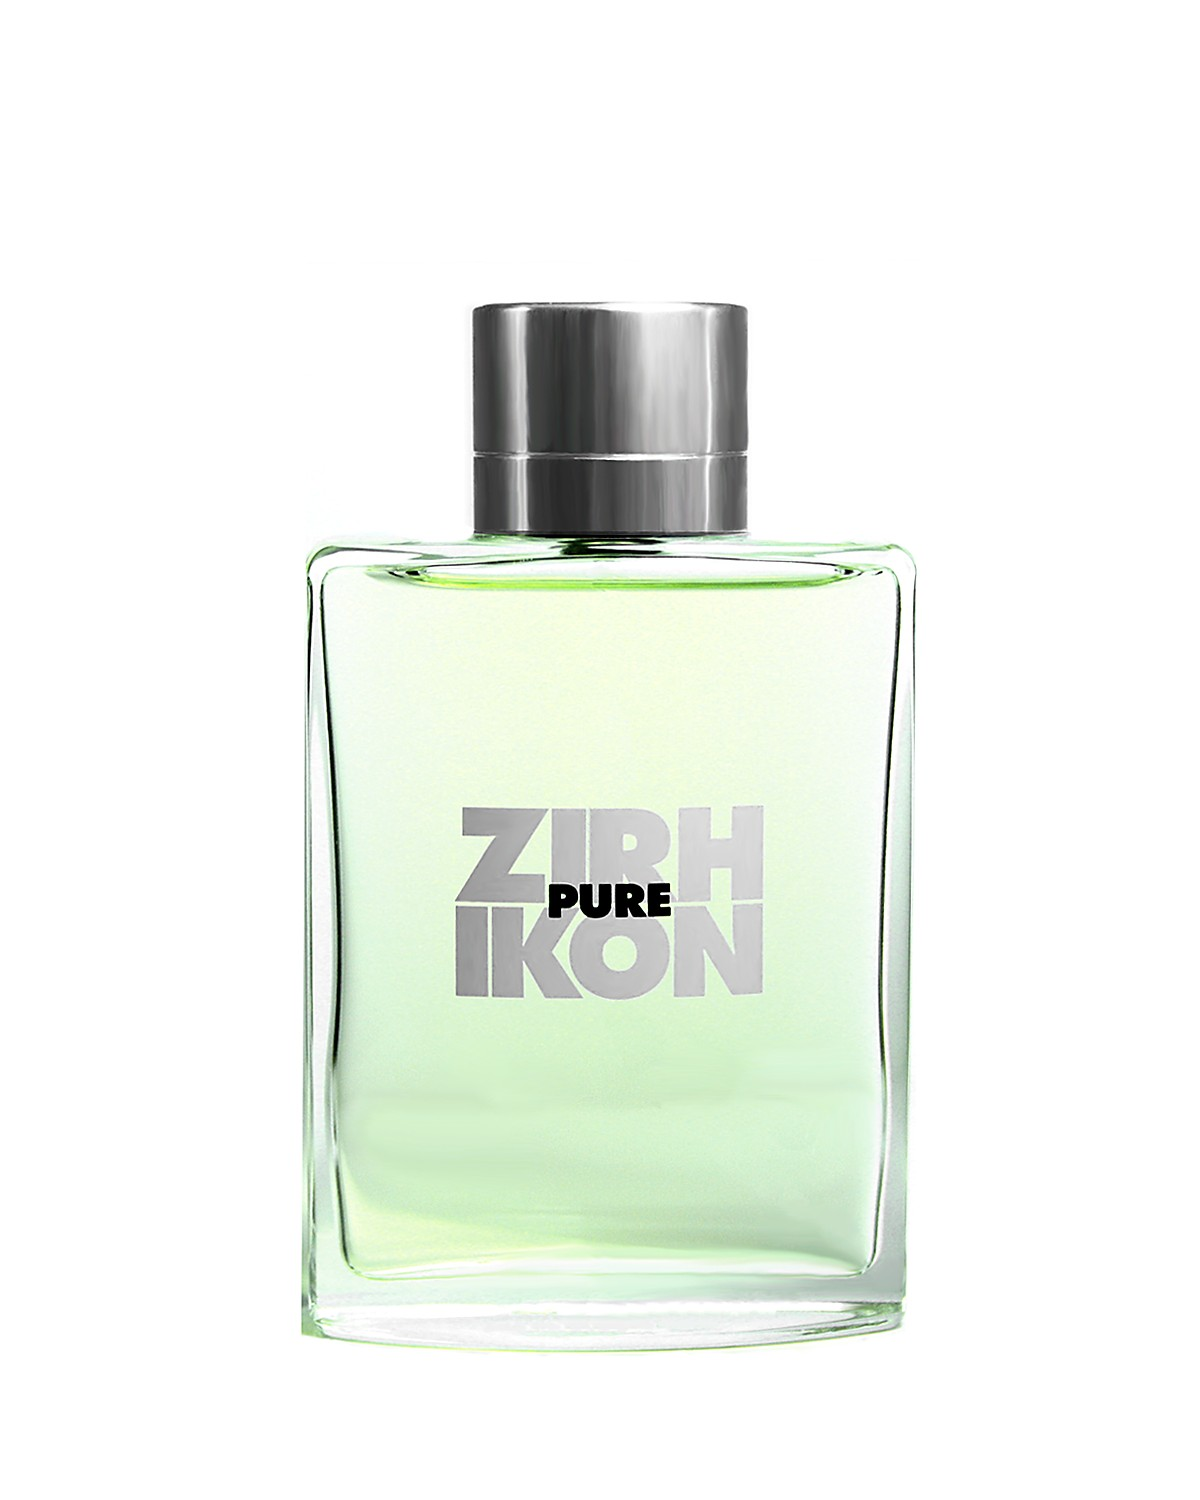 Zirh International Pure Ikon